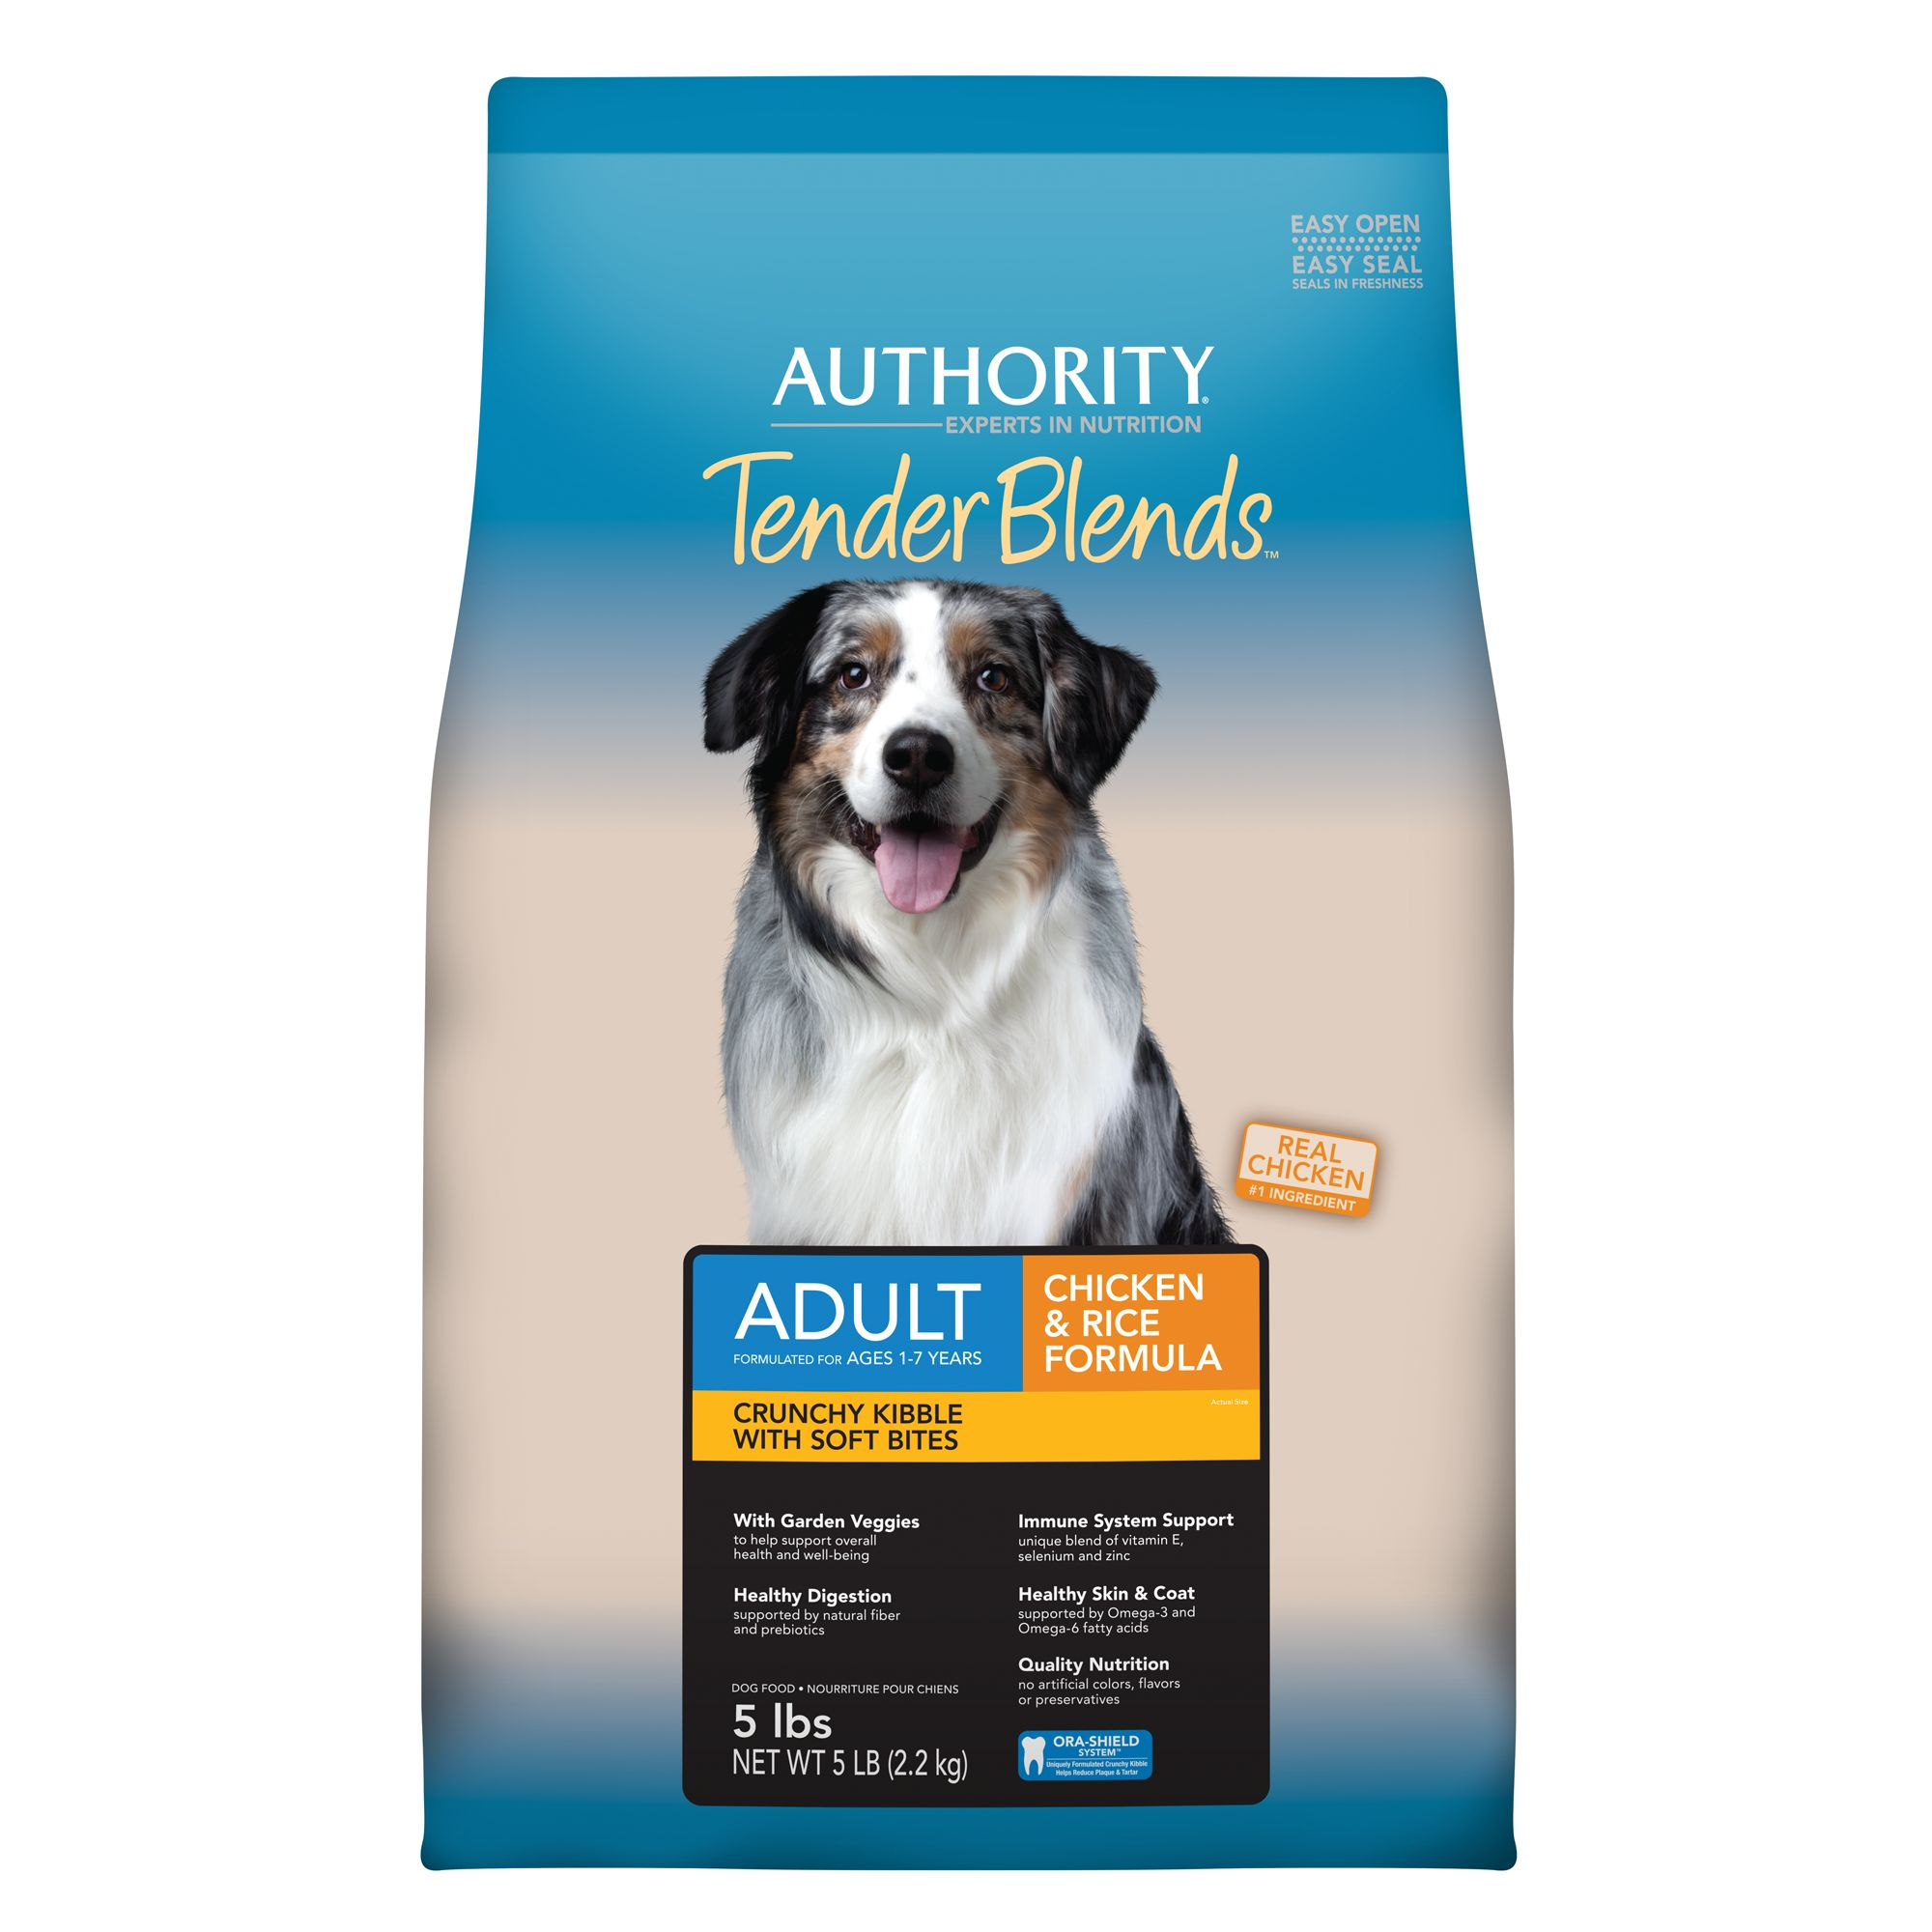 Authority® Tender Blends Adult Dog Food - Chicken and Rice size: 5 Lb